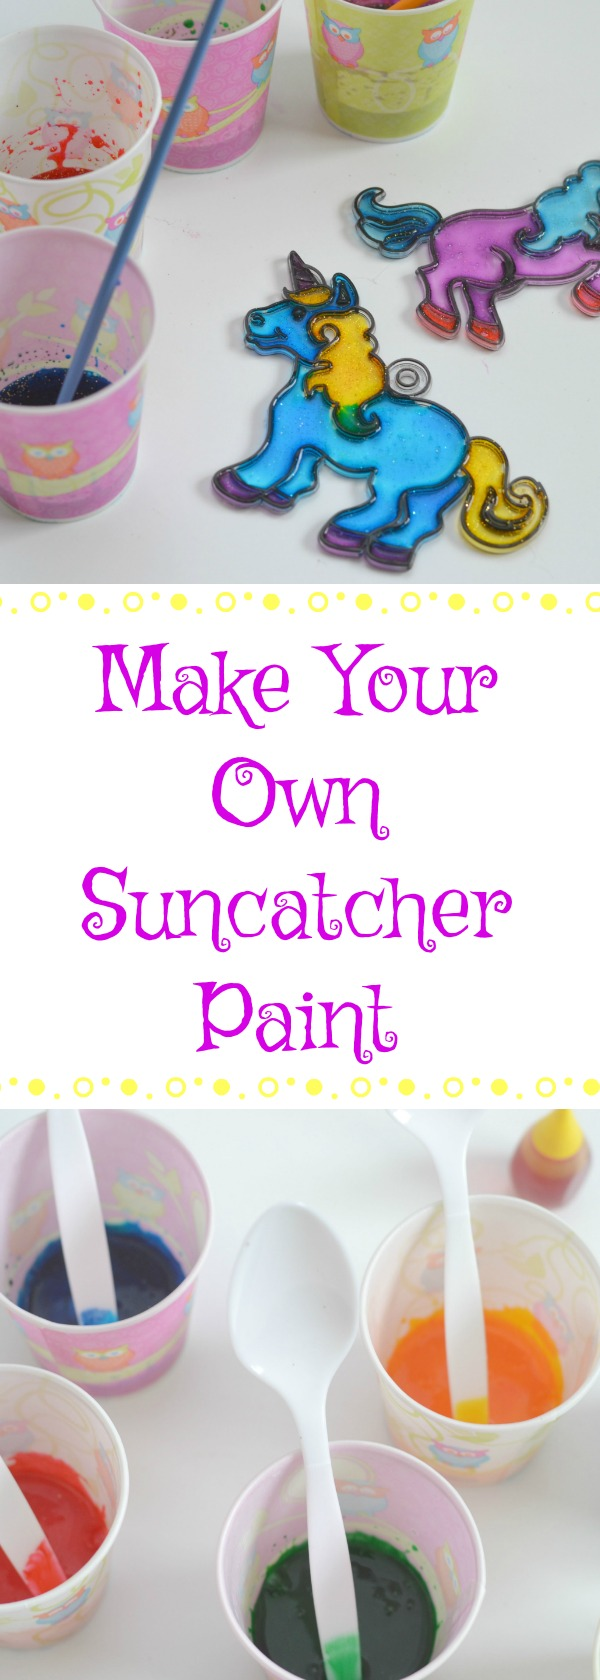 Make your own suncatcher paint, can you make suncatcher paint?, how to make suncatcher paint, where to buy suncatcher paint, easy DIY suncatcher paint